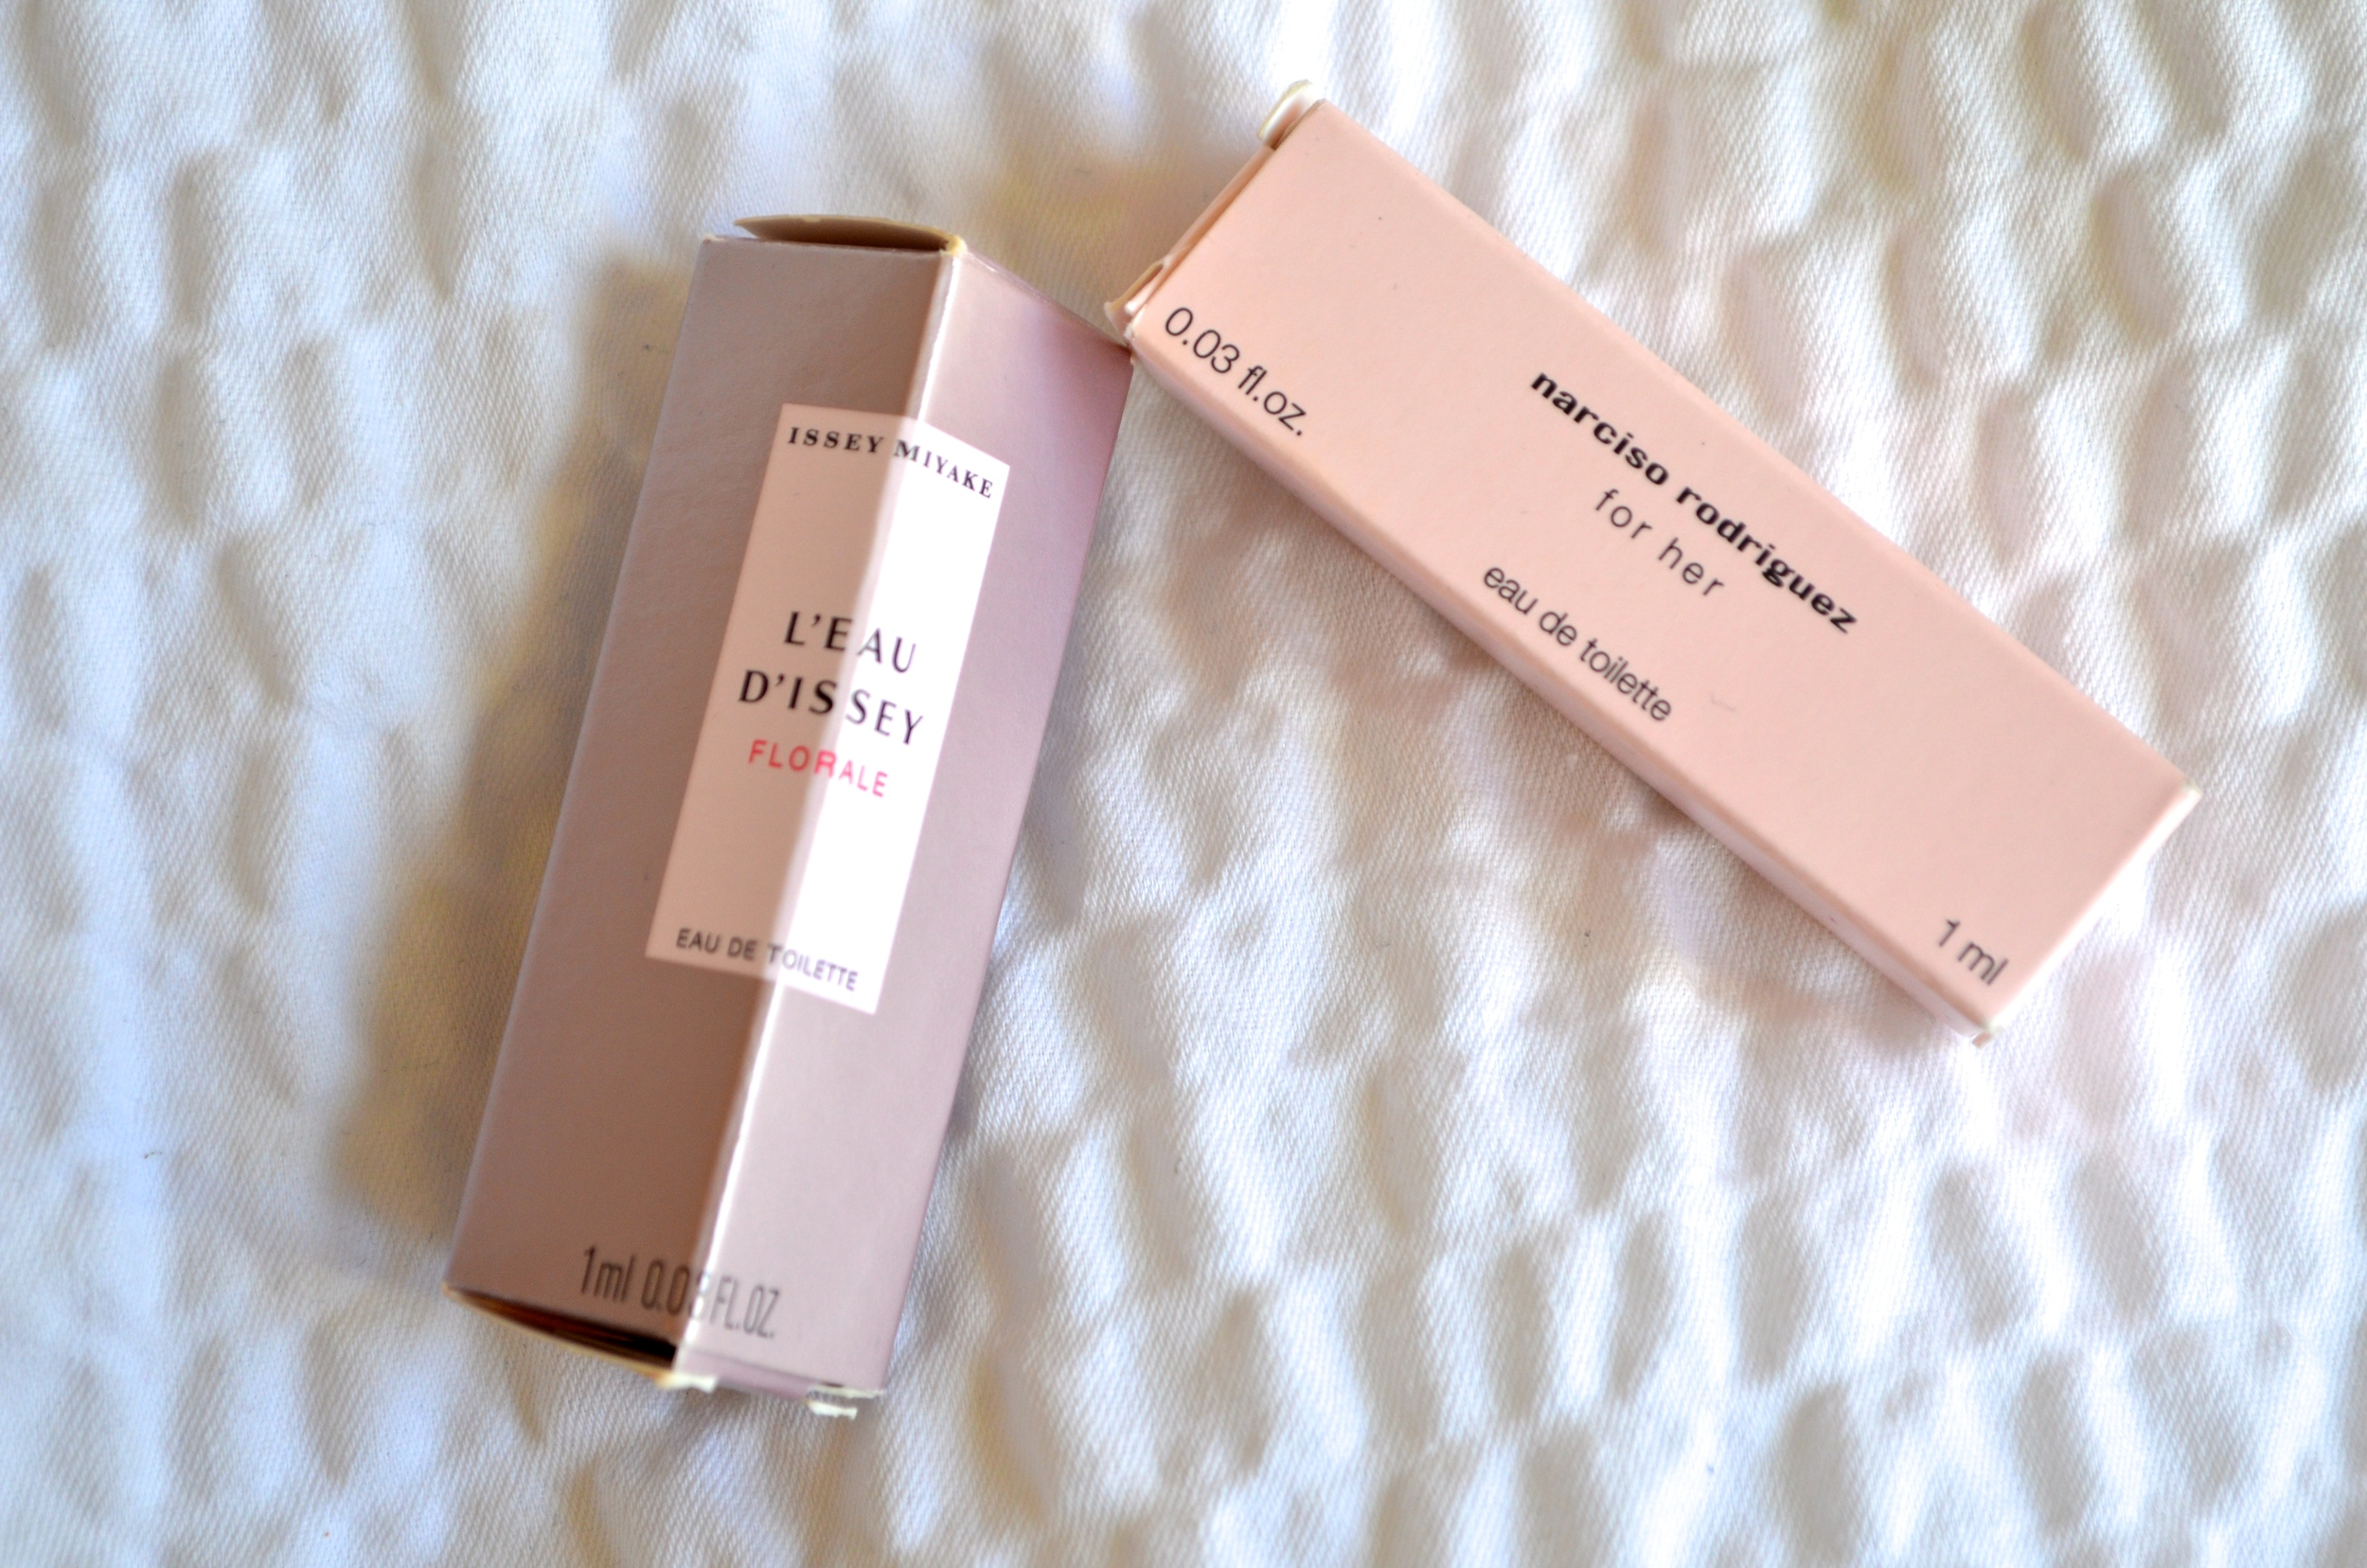 issey miyake l'eau d'issey florale review, narciso rodriguez for her review